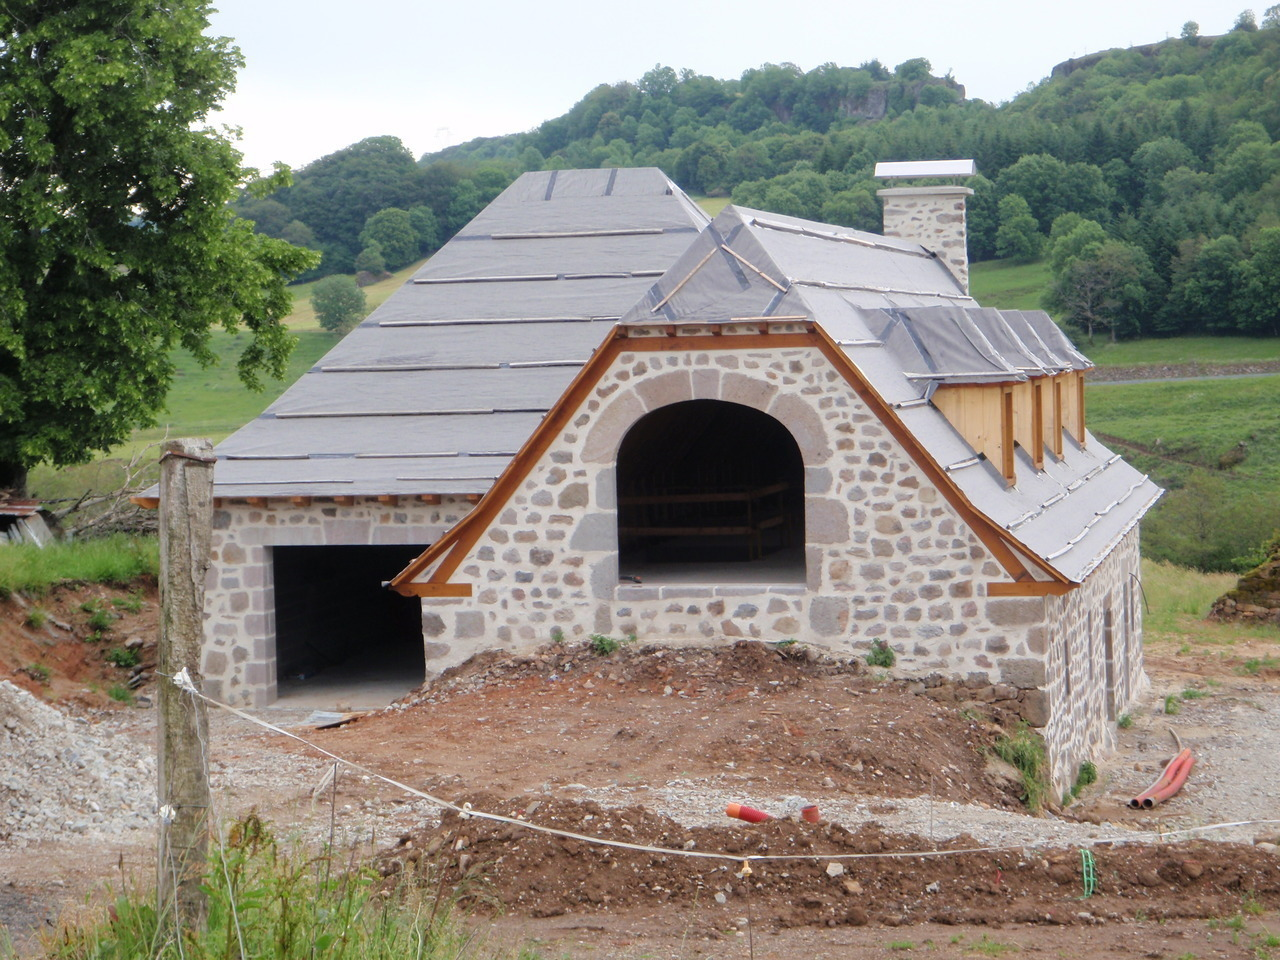 Restauration extension buron grange corps de ferme cantal aurillac - Renovation grange avant apres ...